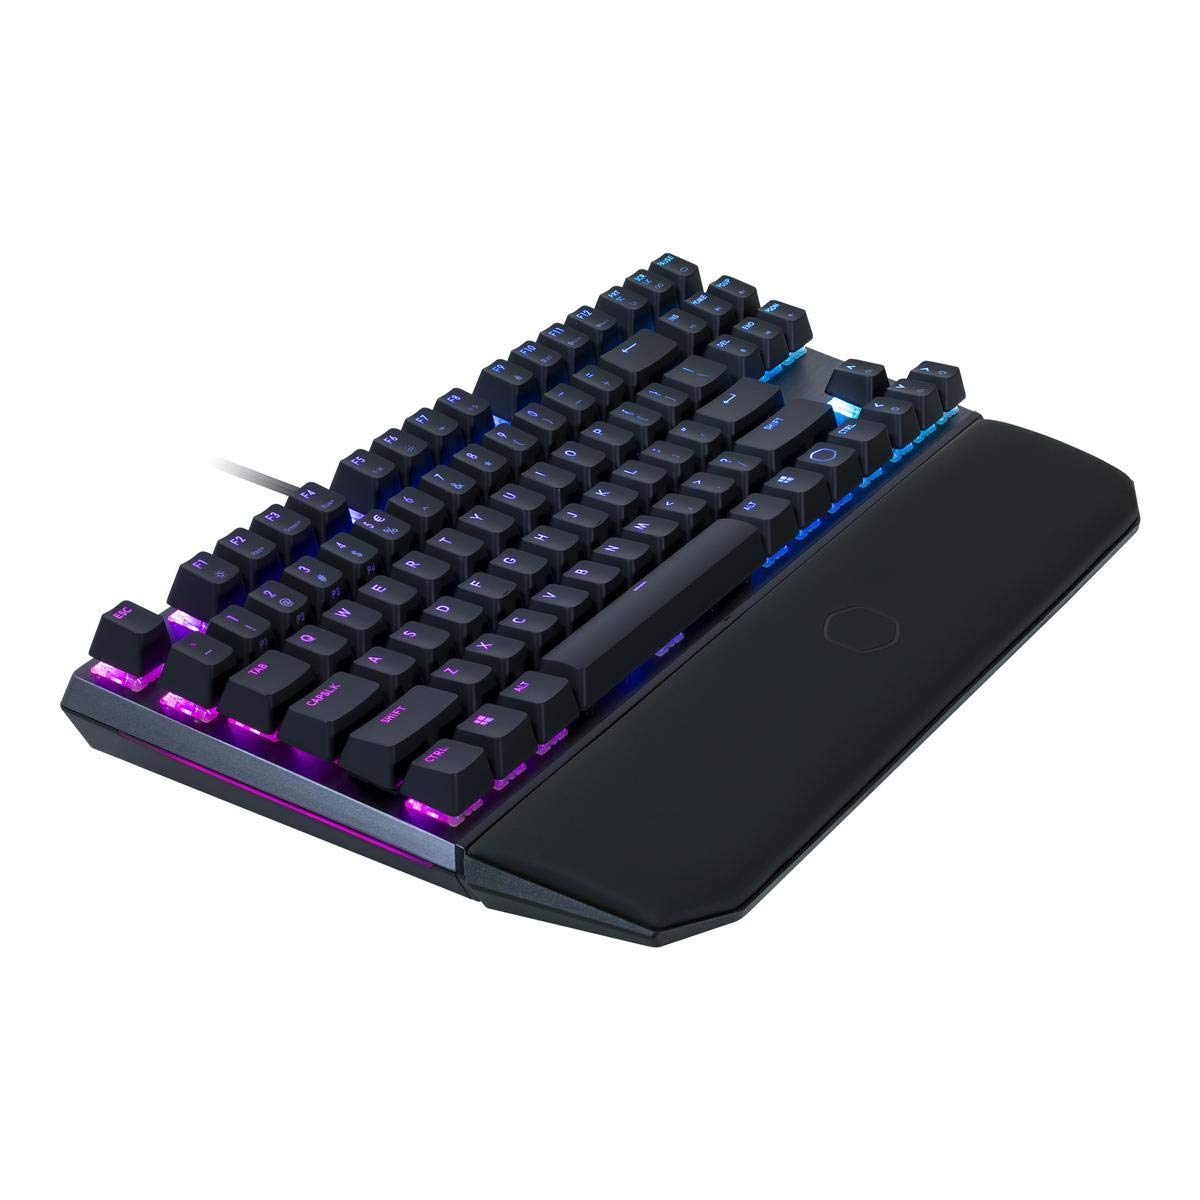 Cooler-Master-MK730-RGB-TKL-Mechanical-Gaming-Keyboard-Cherry-MX-All-Models-VS thumbnail 15